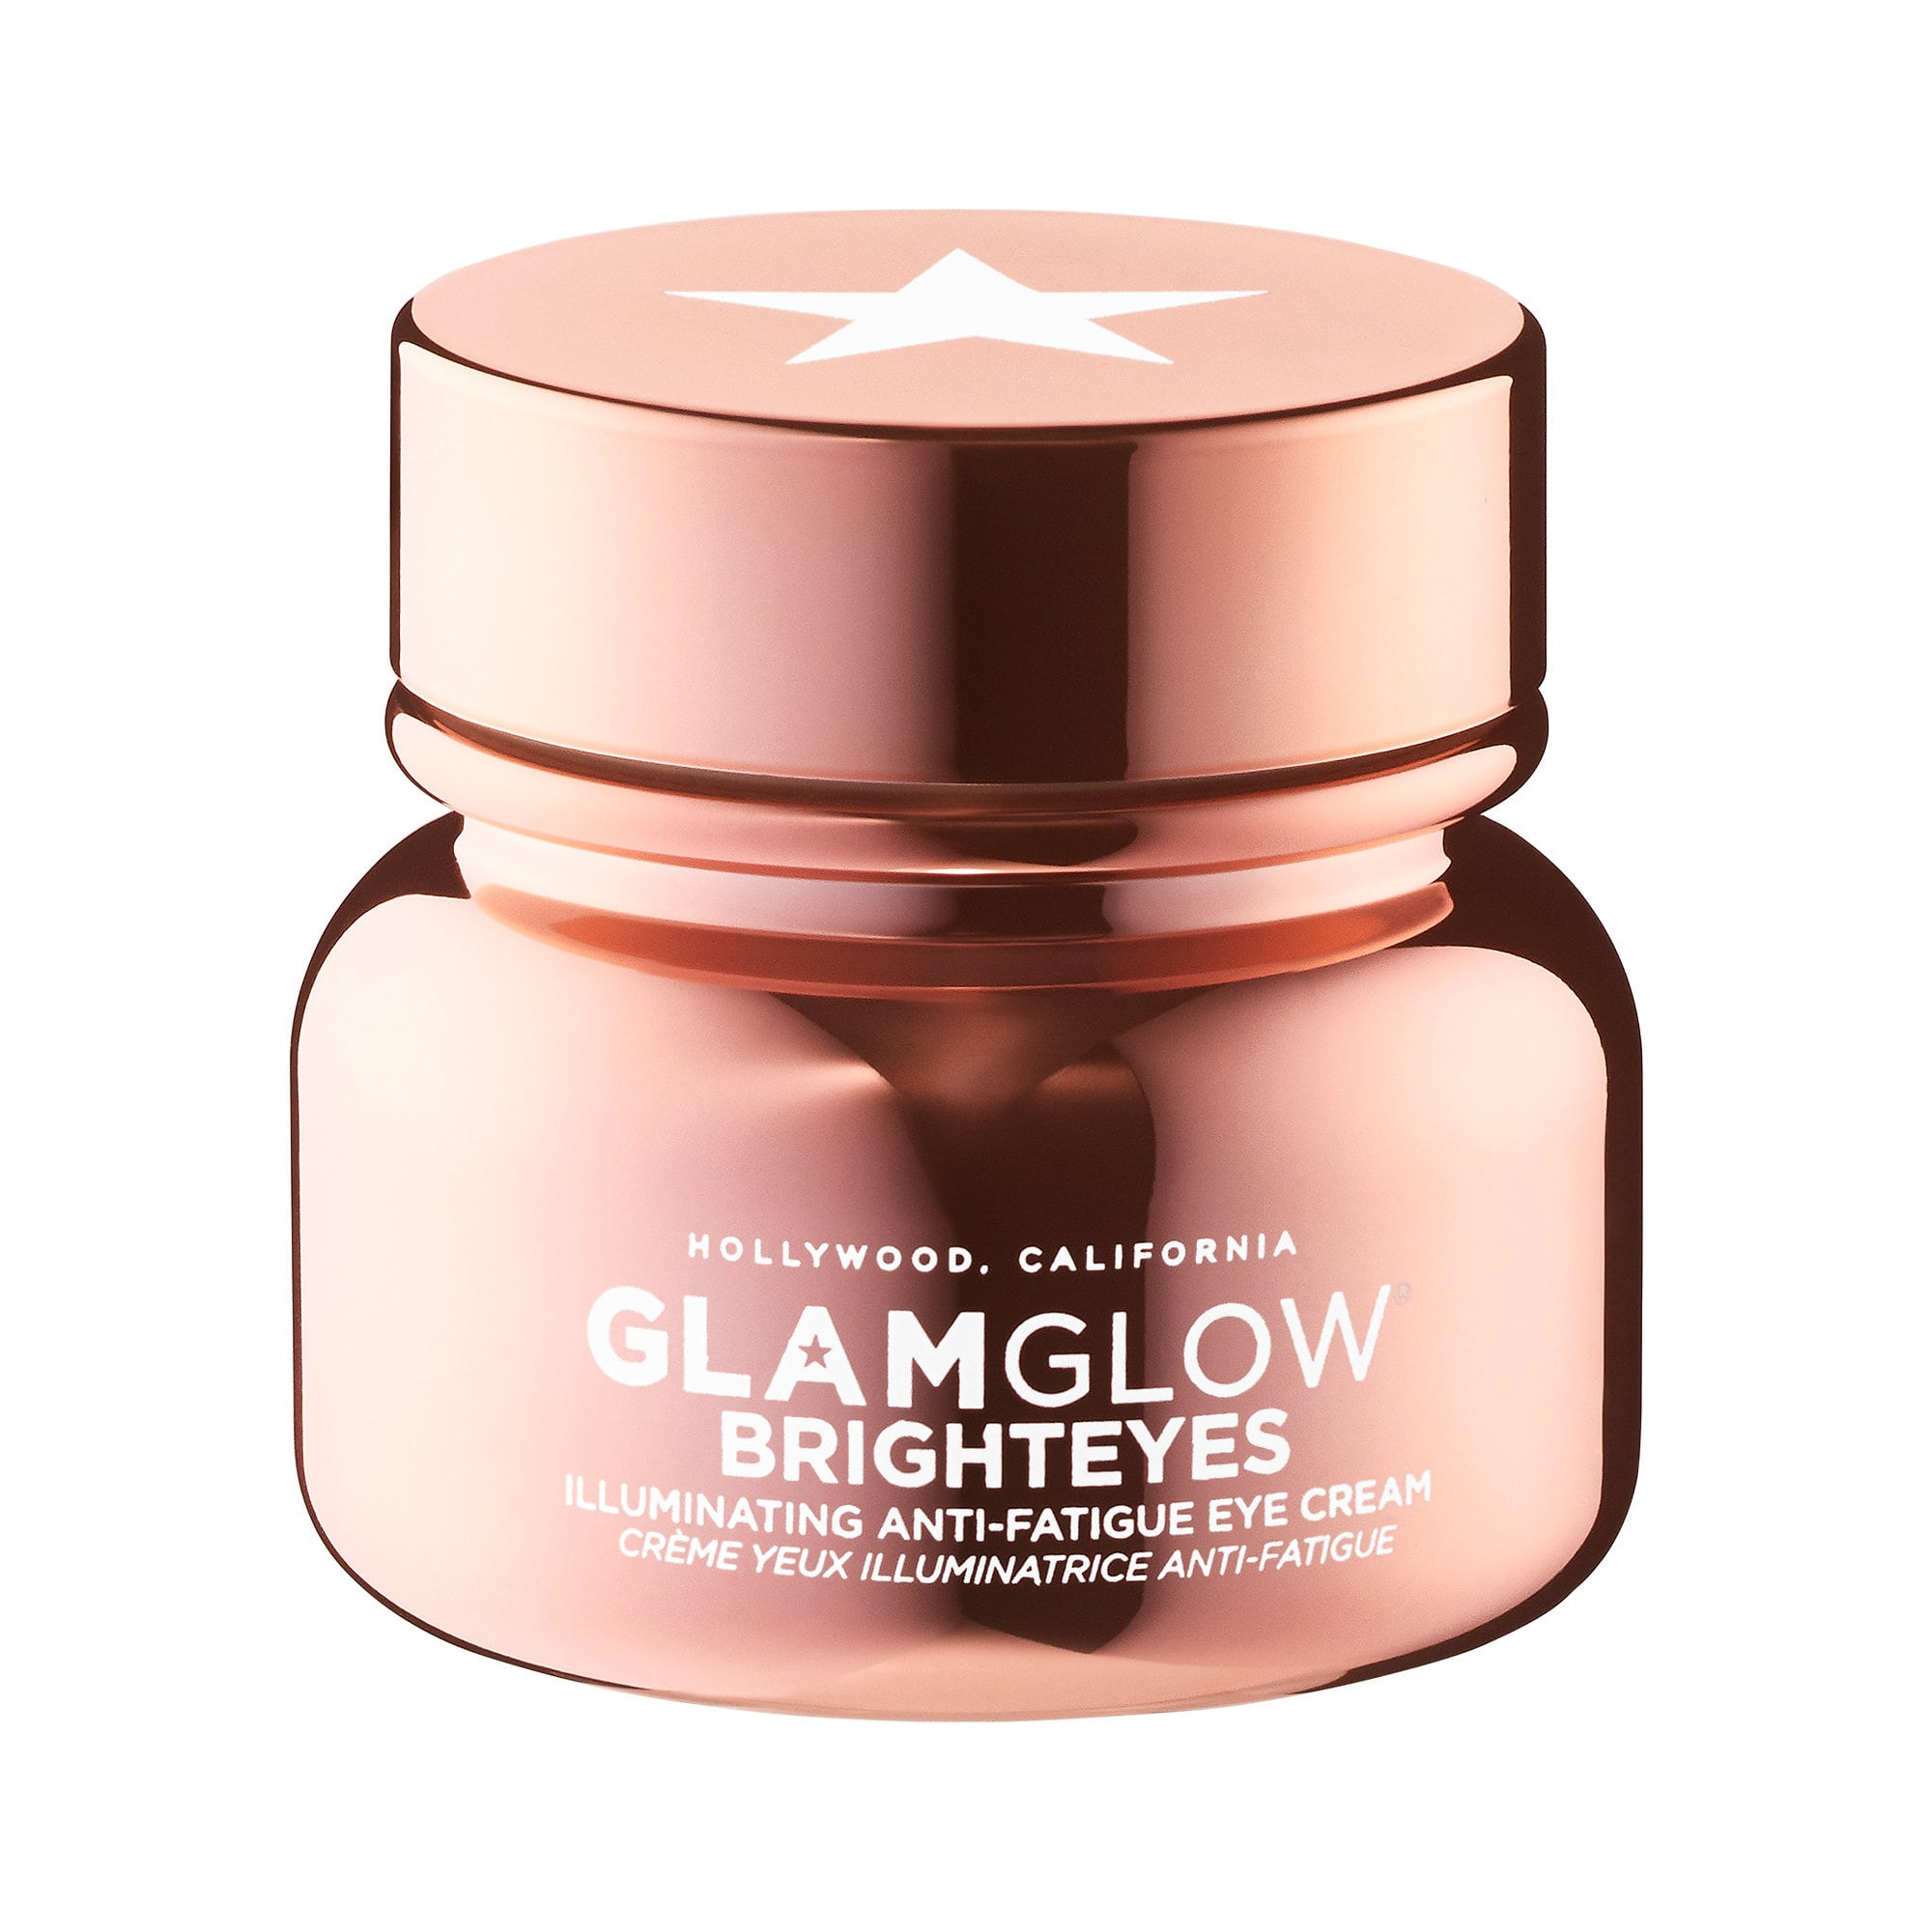 GLAMGLOW-Brighteyes™ Illuminating Anti-Fatigue Eye Cream